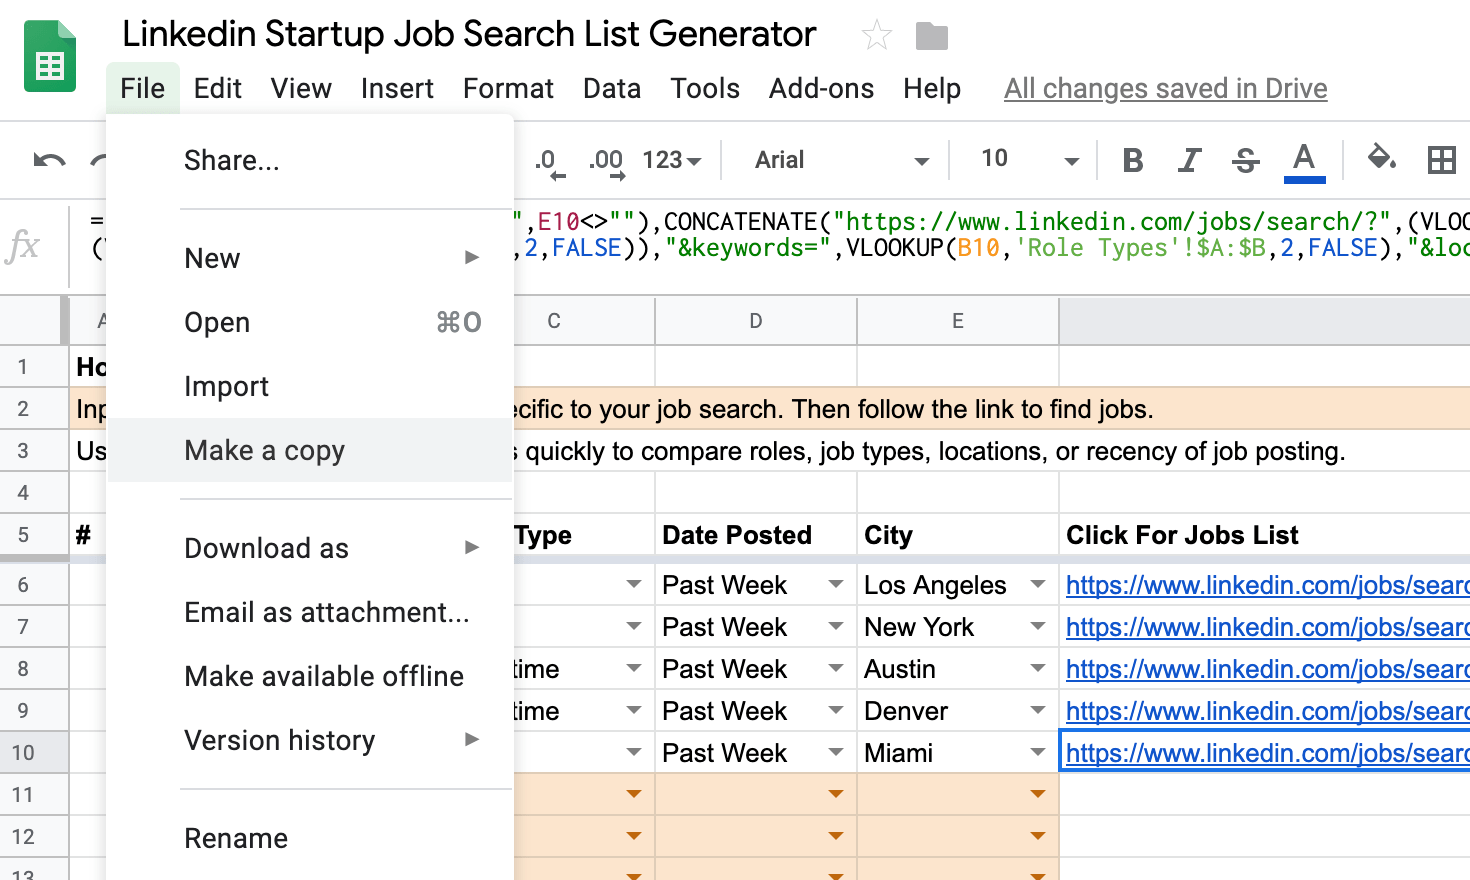 TEMPLATE: Linkedin Startup Job Search List Generator – Make a Copy Help